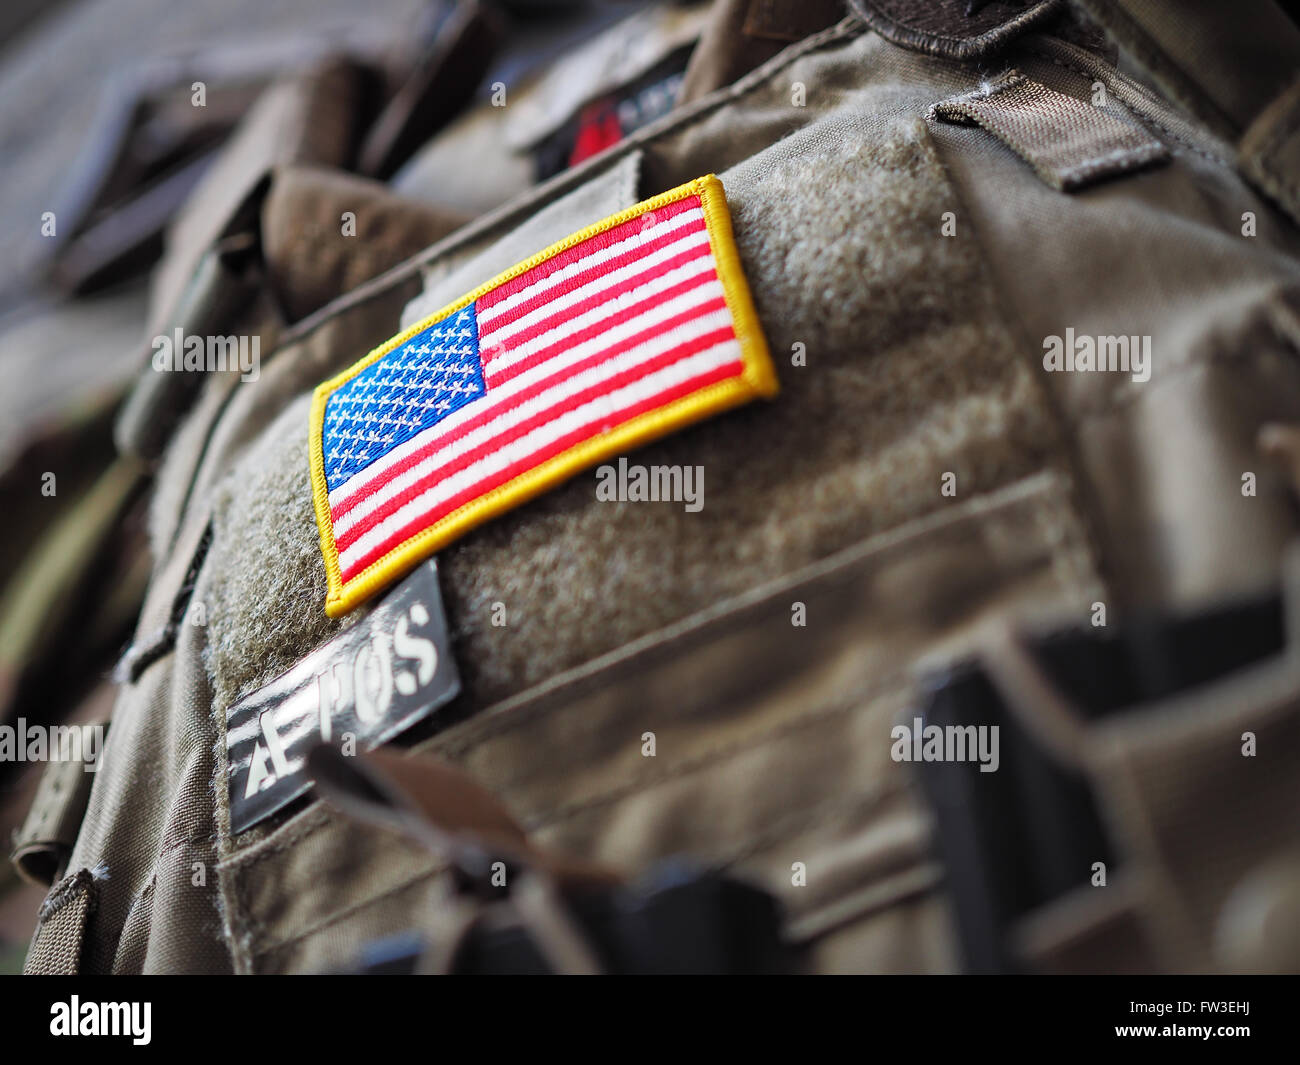 Plate Carrier with USA flag patch shallow depth of field Stock Photo